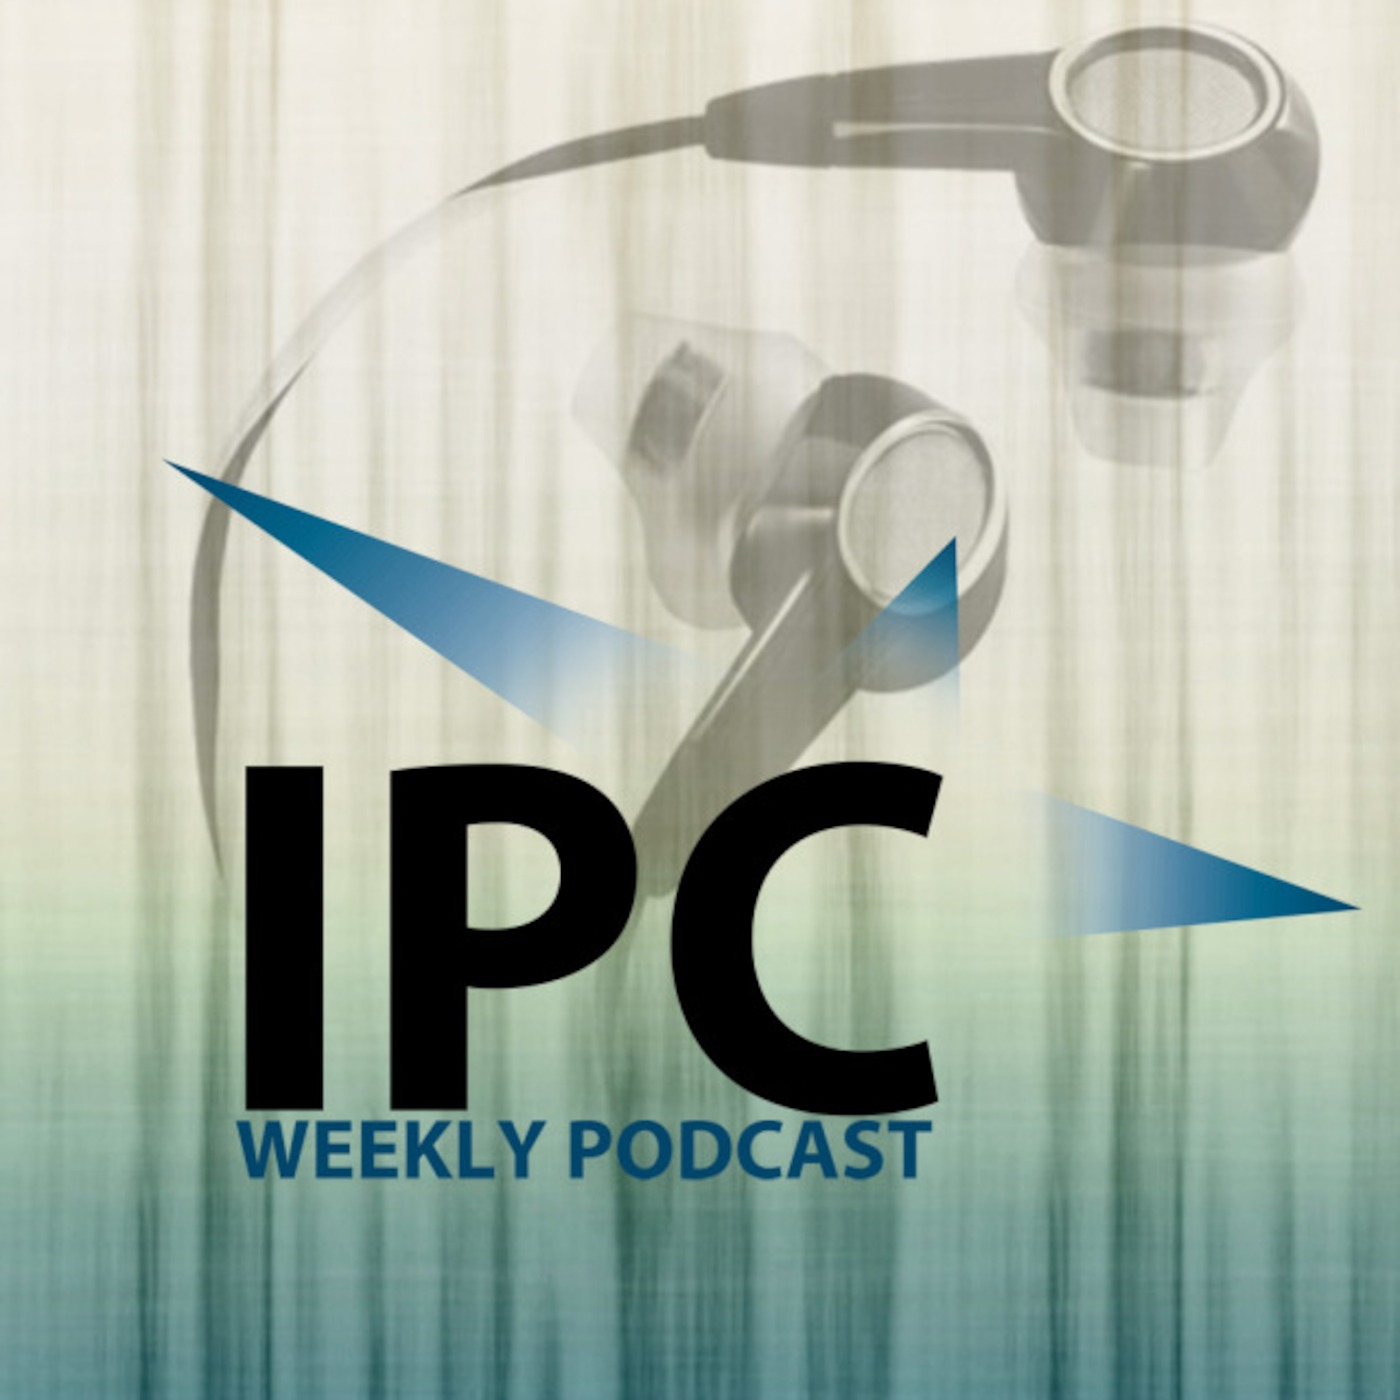 IPC Weekly Podcast